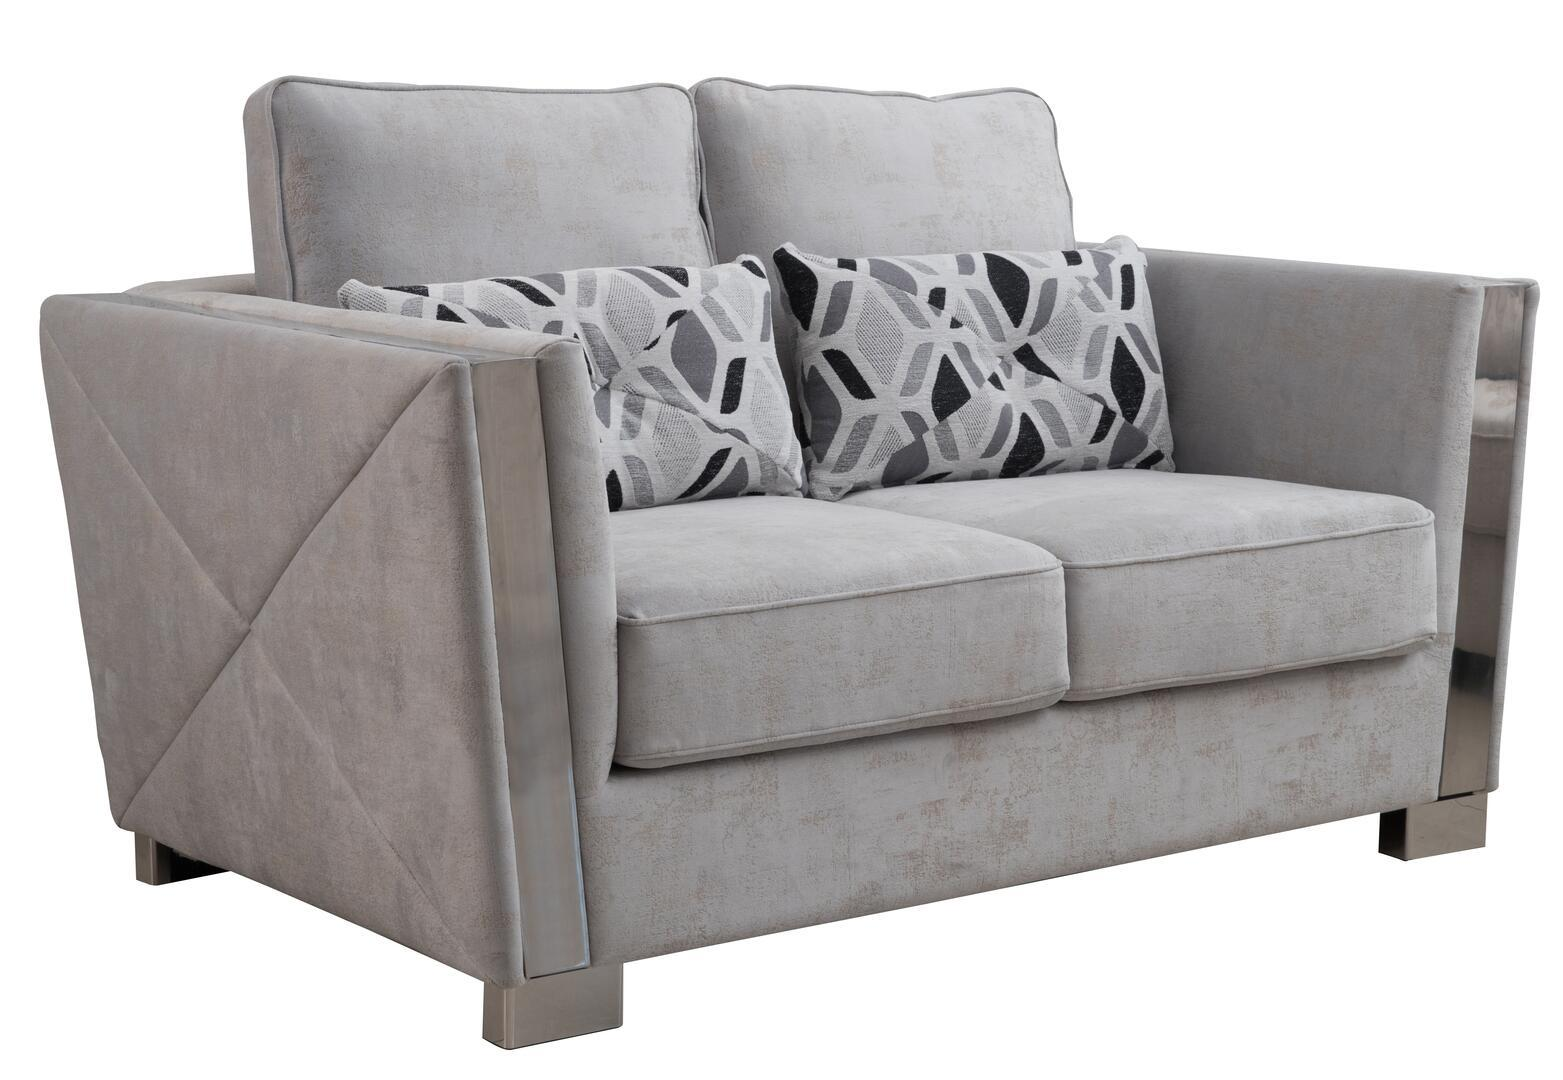 Modern Gray Fabric Loveseat 1 pcs Cosmos Furniture 3036GYKIN